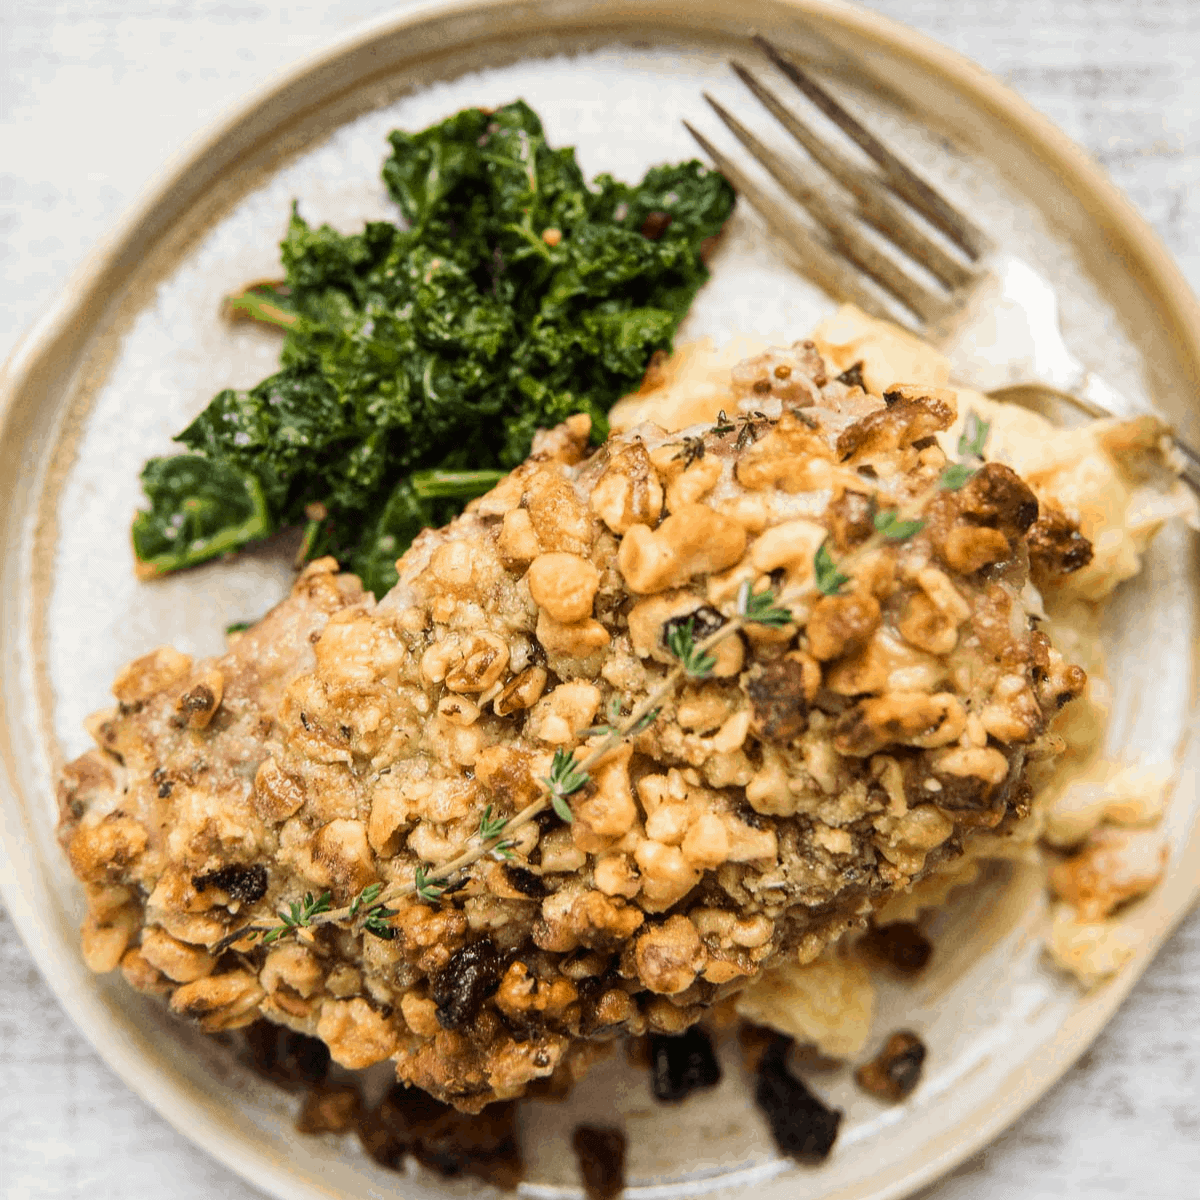 walnut crusted pork chop on a plate with kale and mashed potatoes